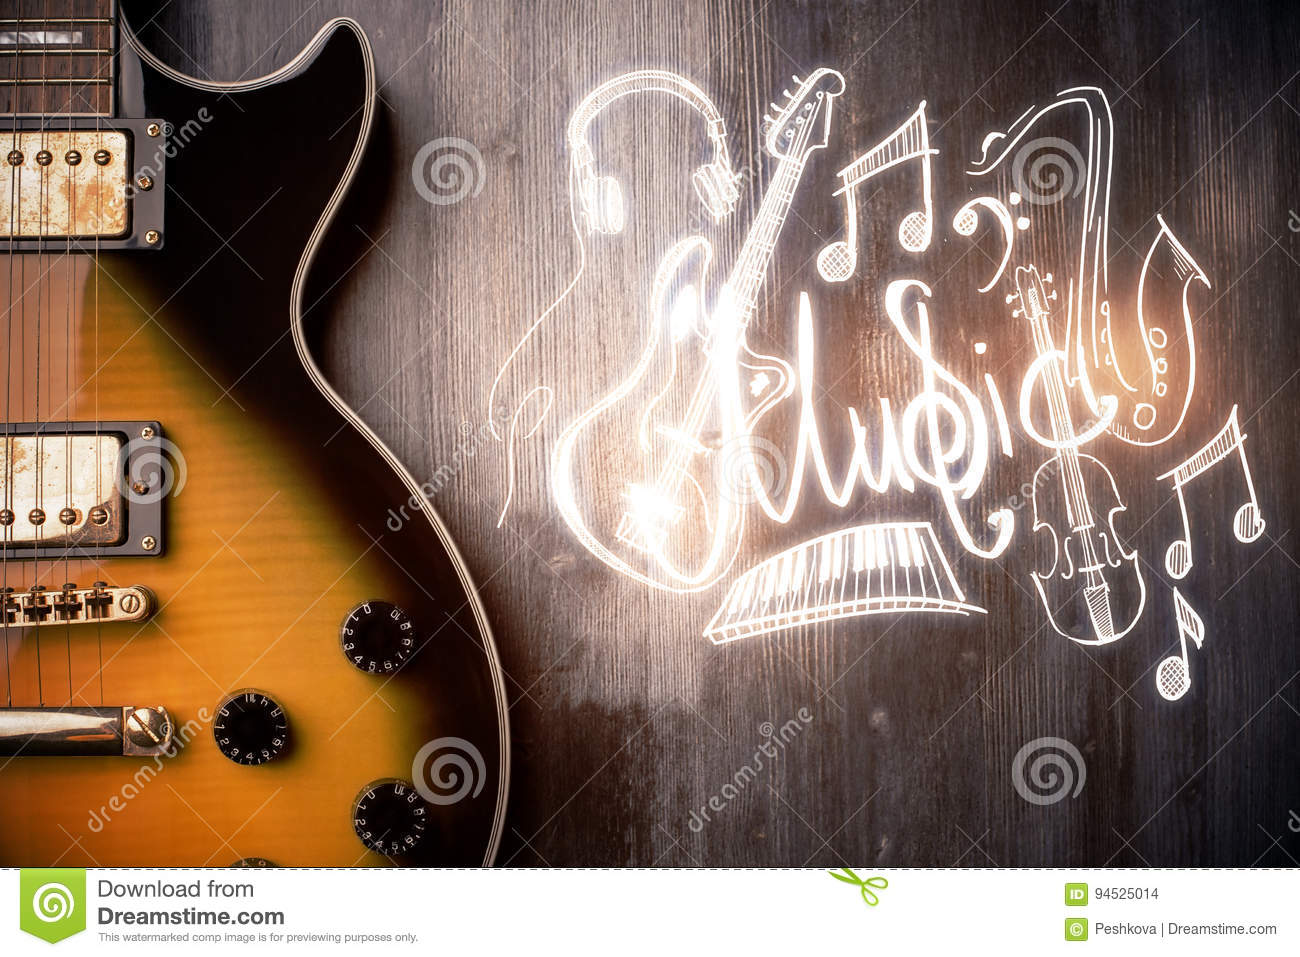 Guitar sketch stock images download 82 royalty free photos